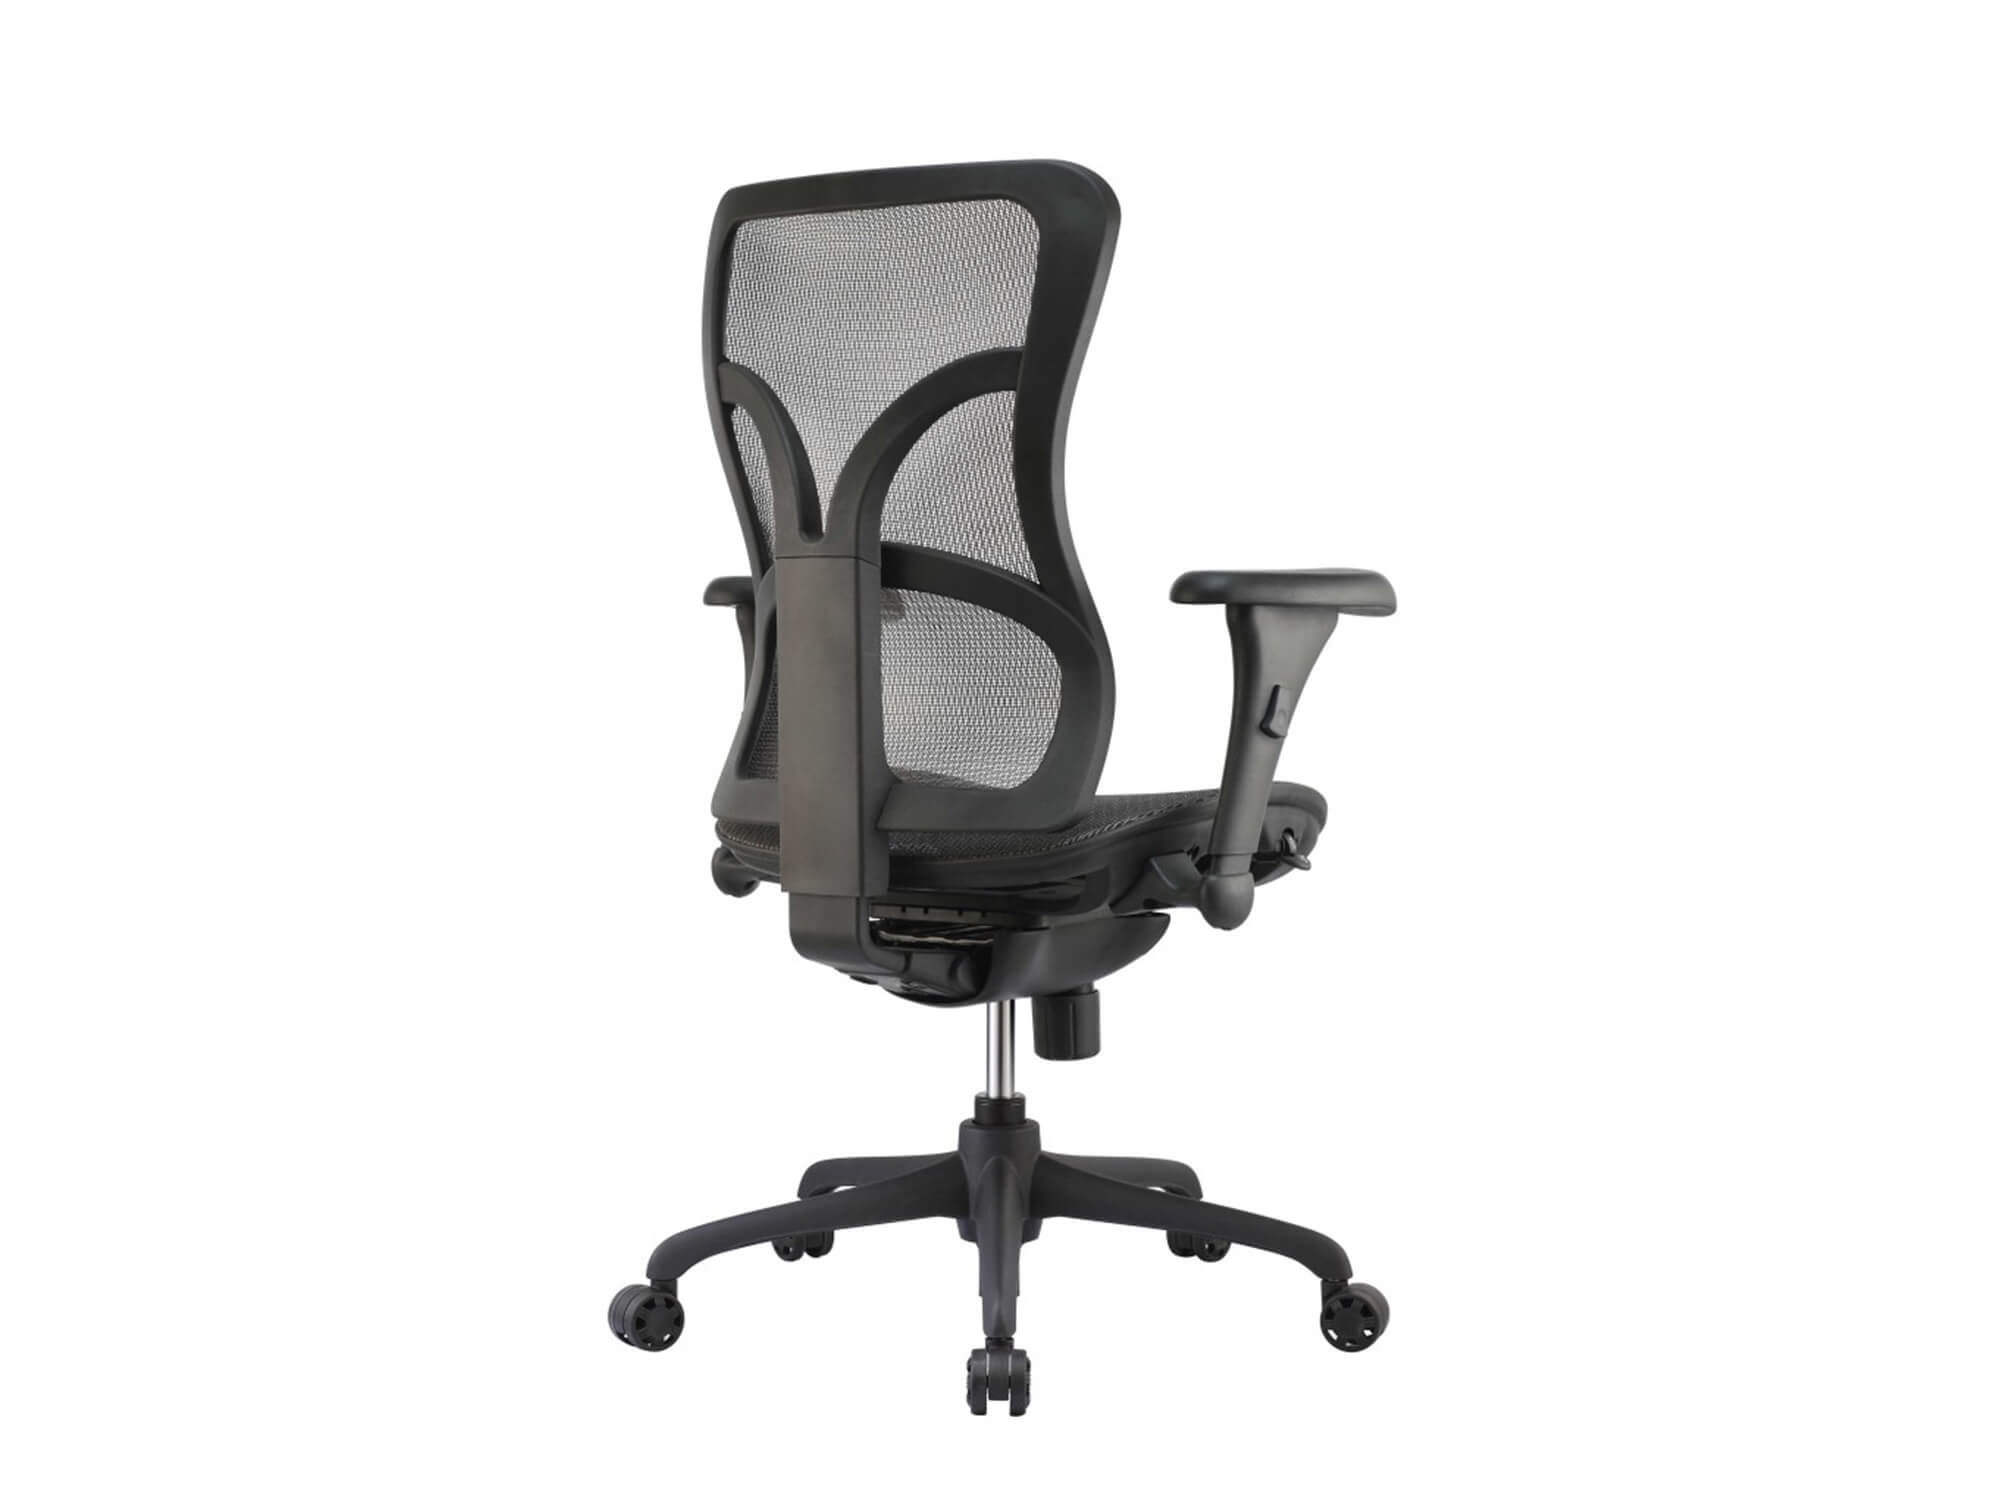 Adjustable office chair angle back